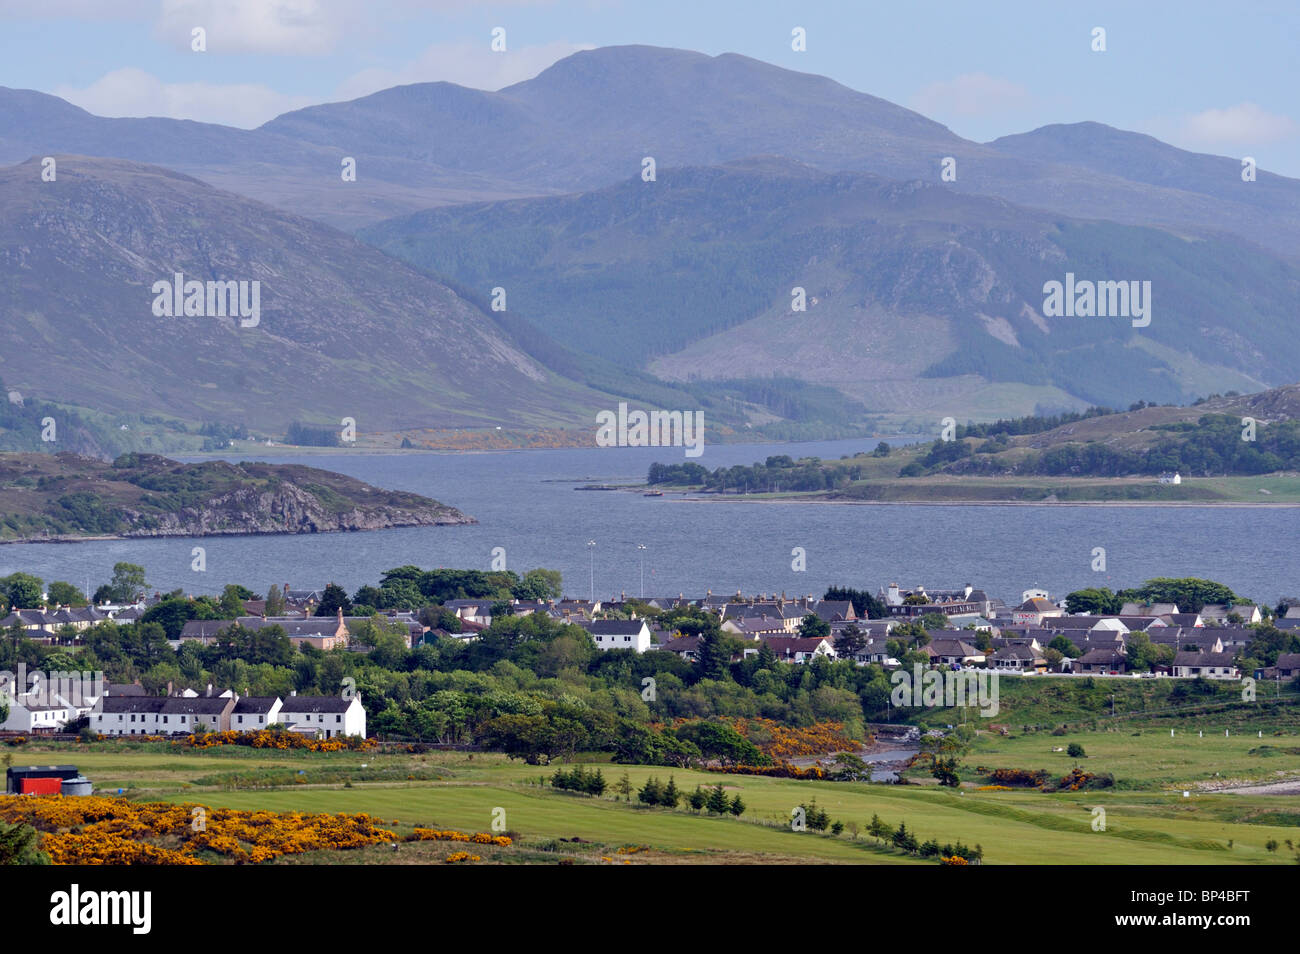 Ullapool, Loch Broom, Ross and Cromarty, Scotland, United Kingdom, Europe. - Stock Image